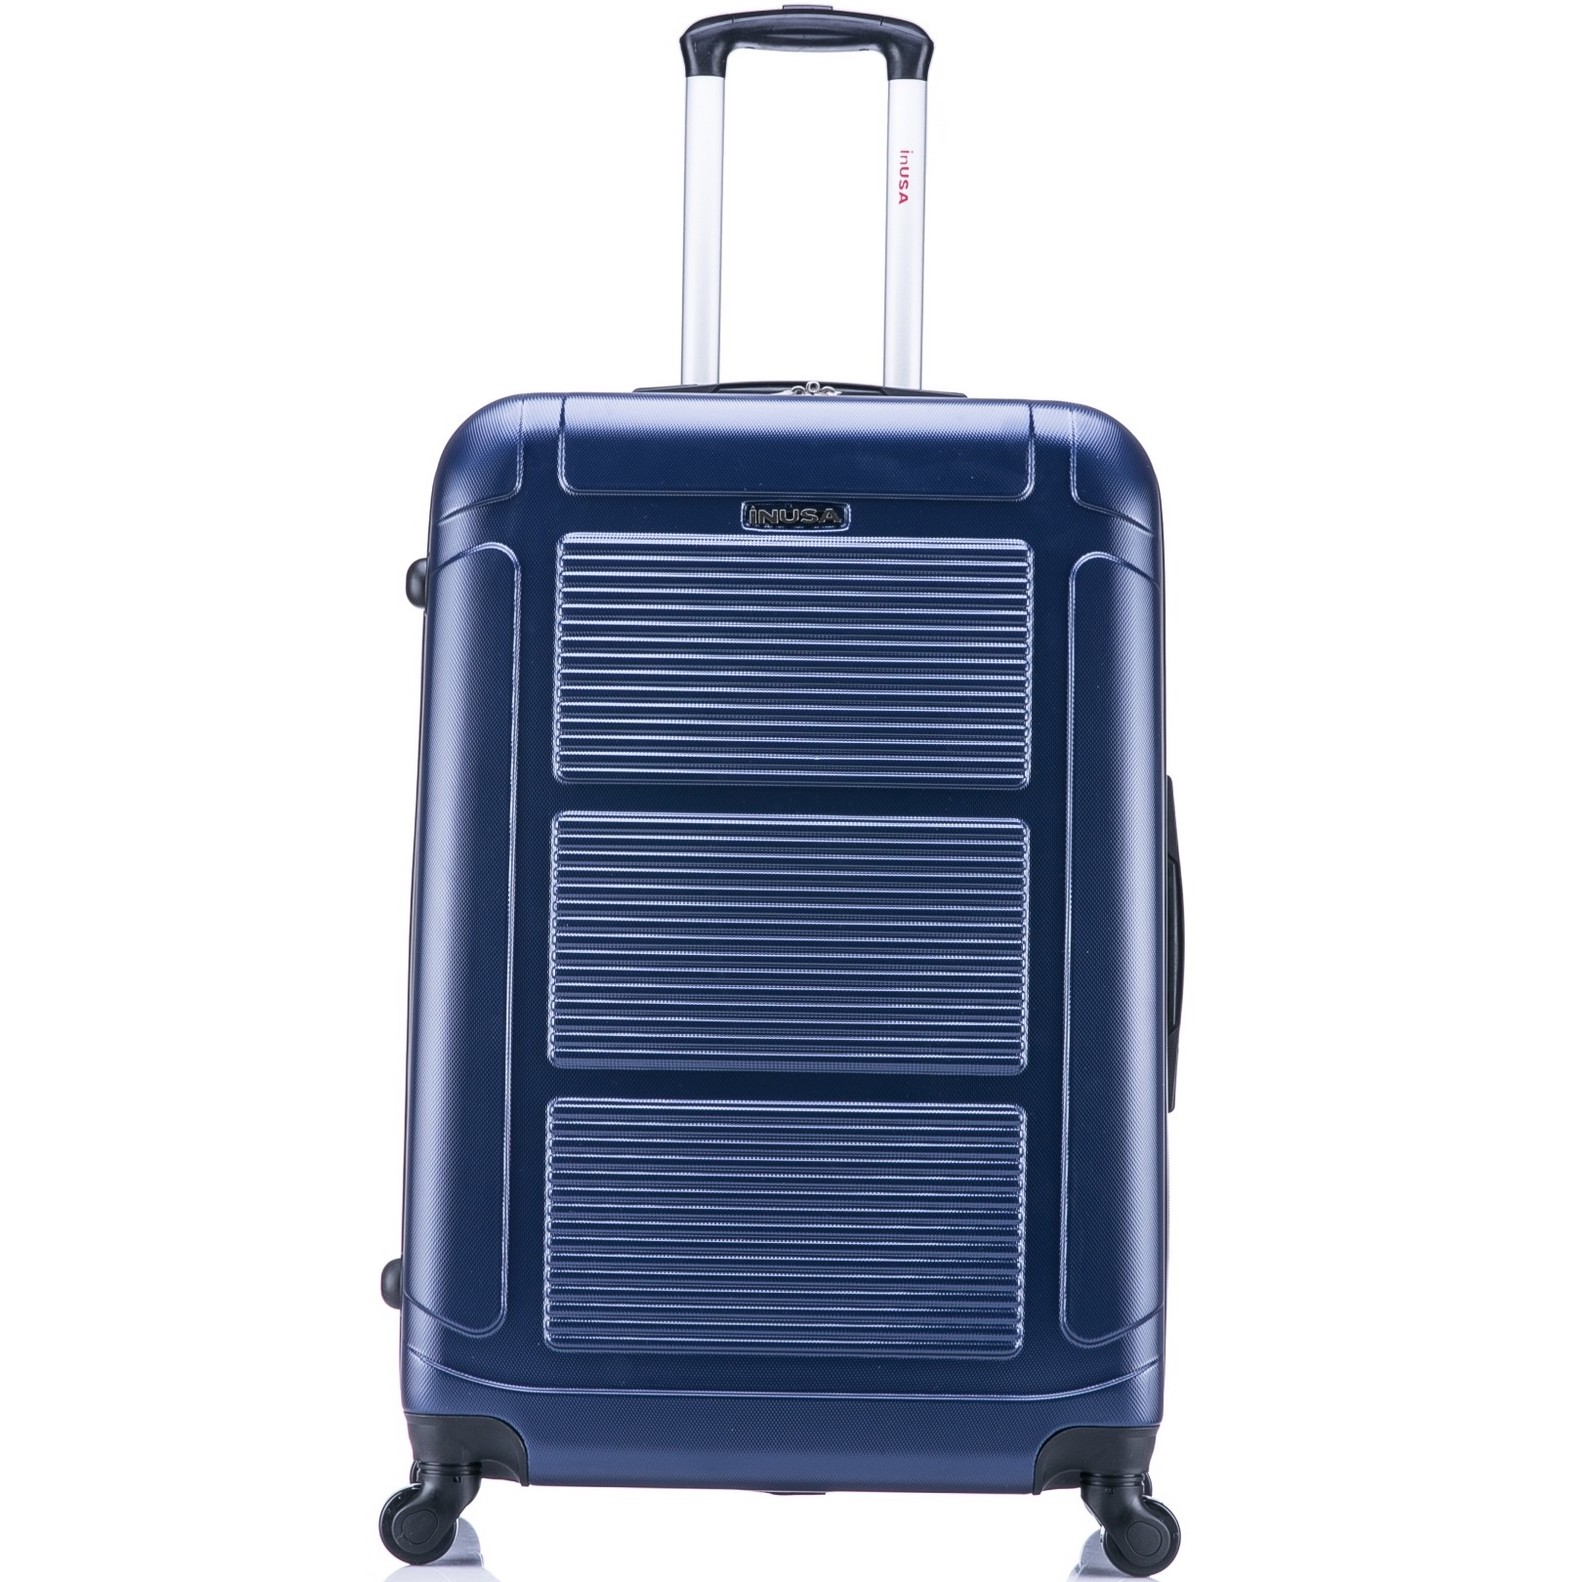 InUSA Pilot 28u0022 Hardside Spinner Suitcase - Navy Blue